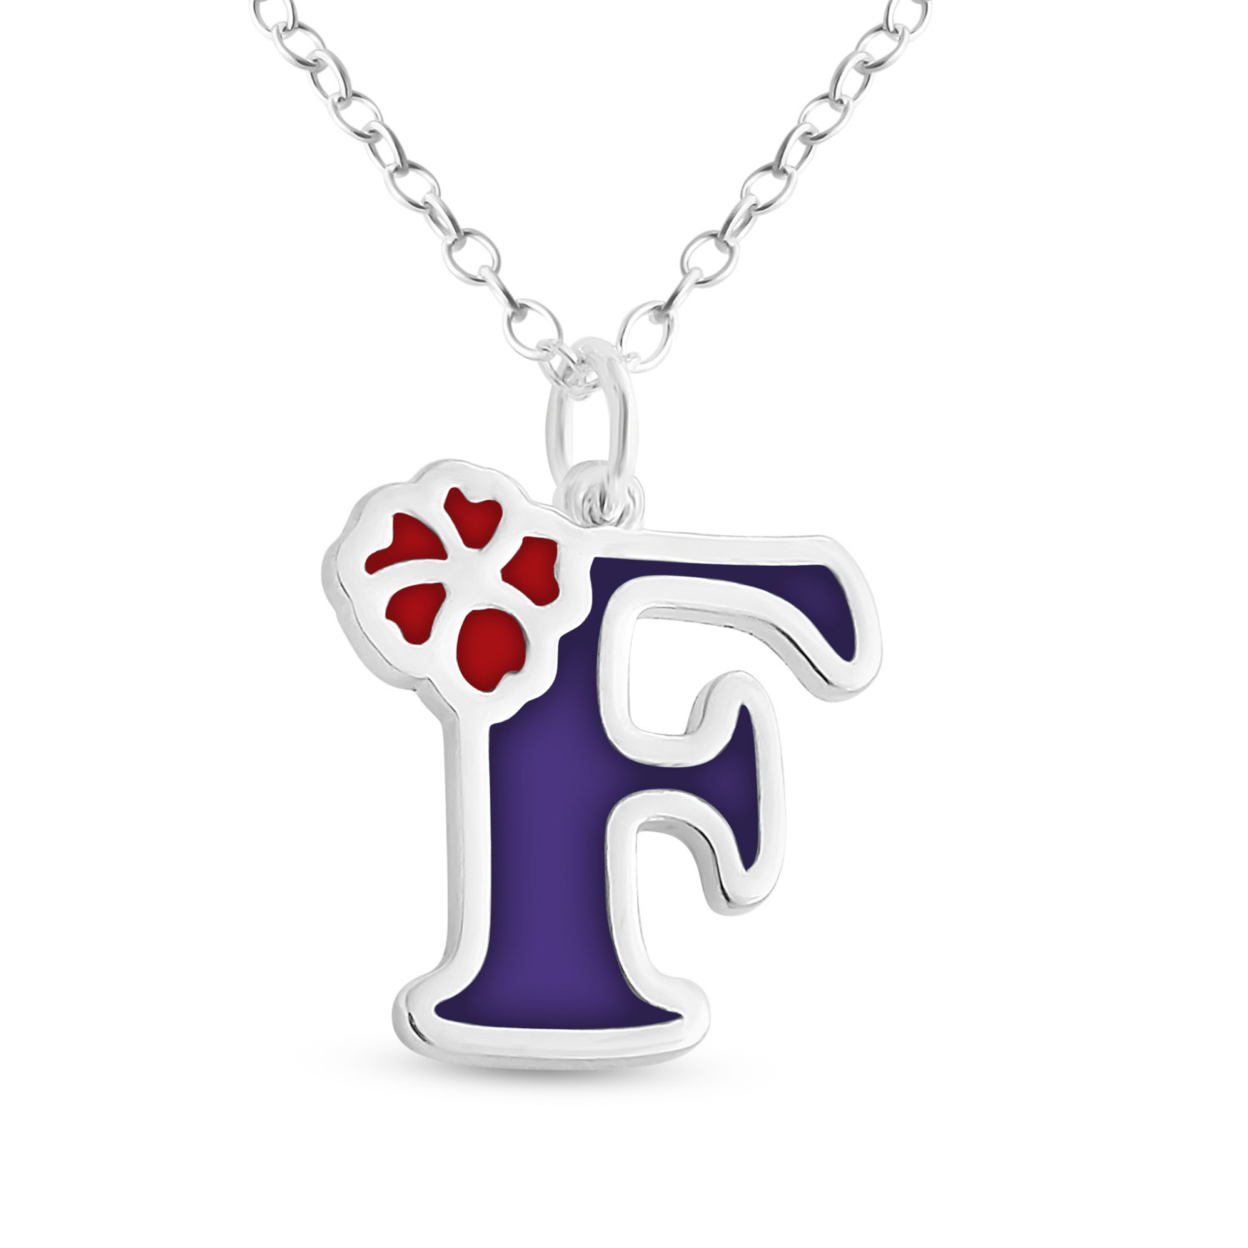 Purple Enameled Initial Letter F With Flower Multi Colors Charm Pendant Necklace #925 Sterling Silver #azaggi N0854s_f_v3 12 Child